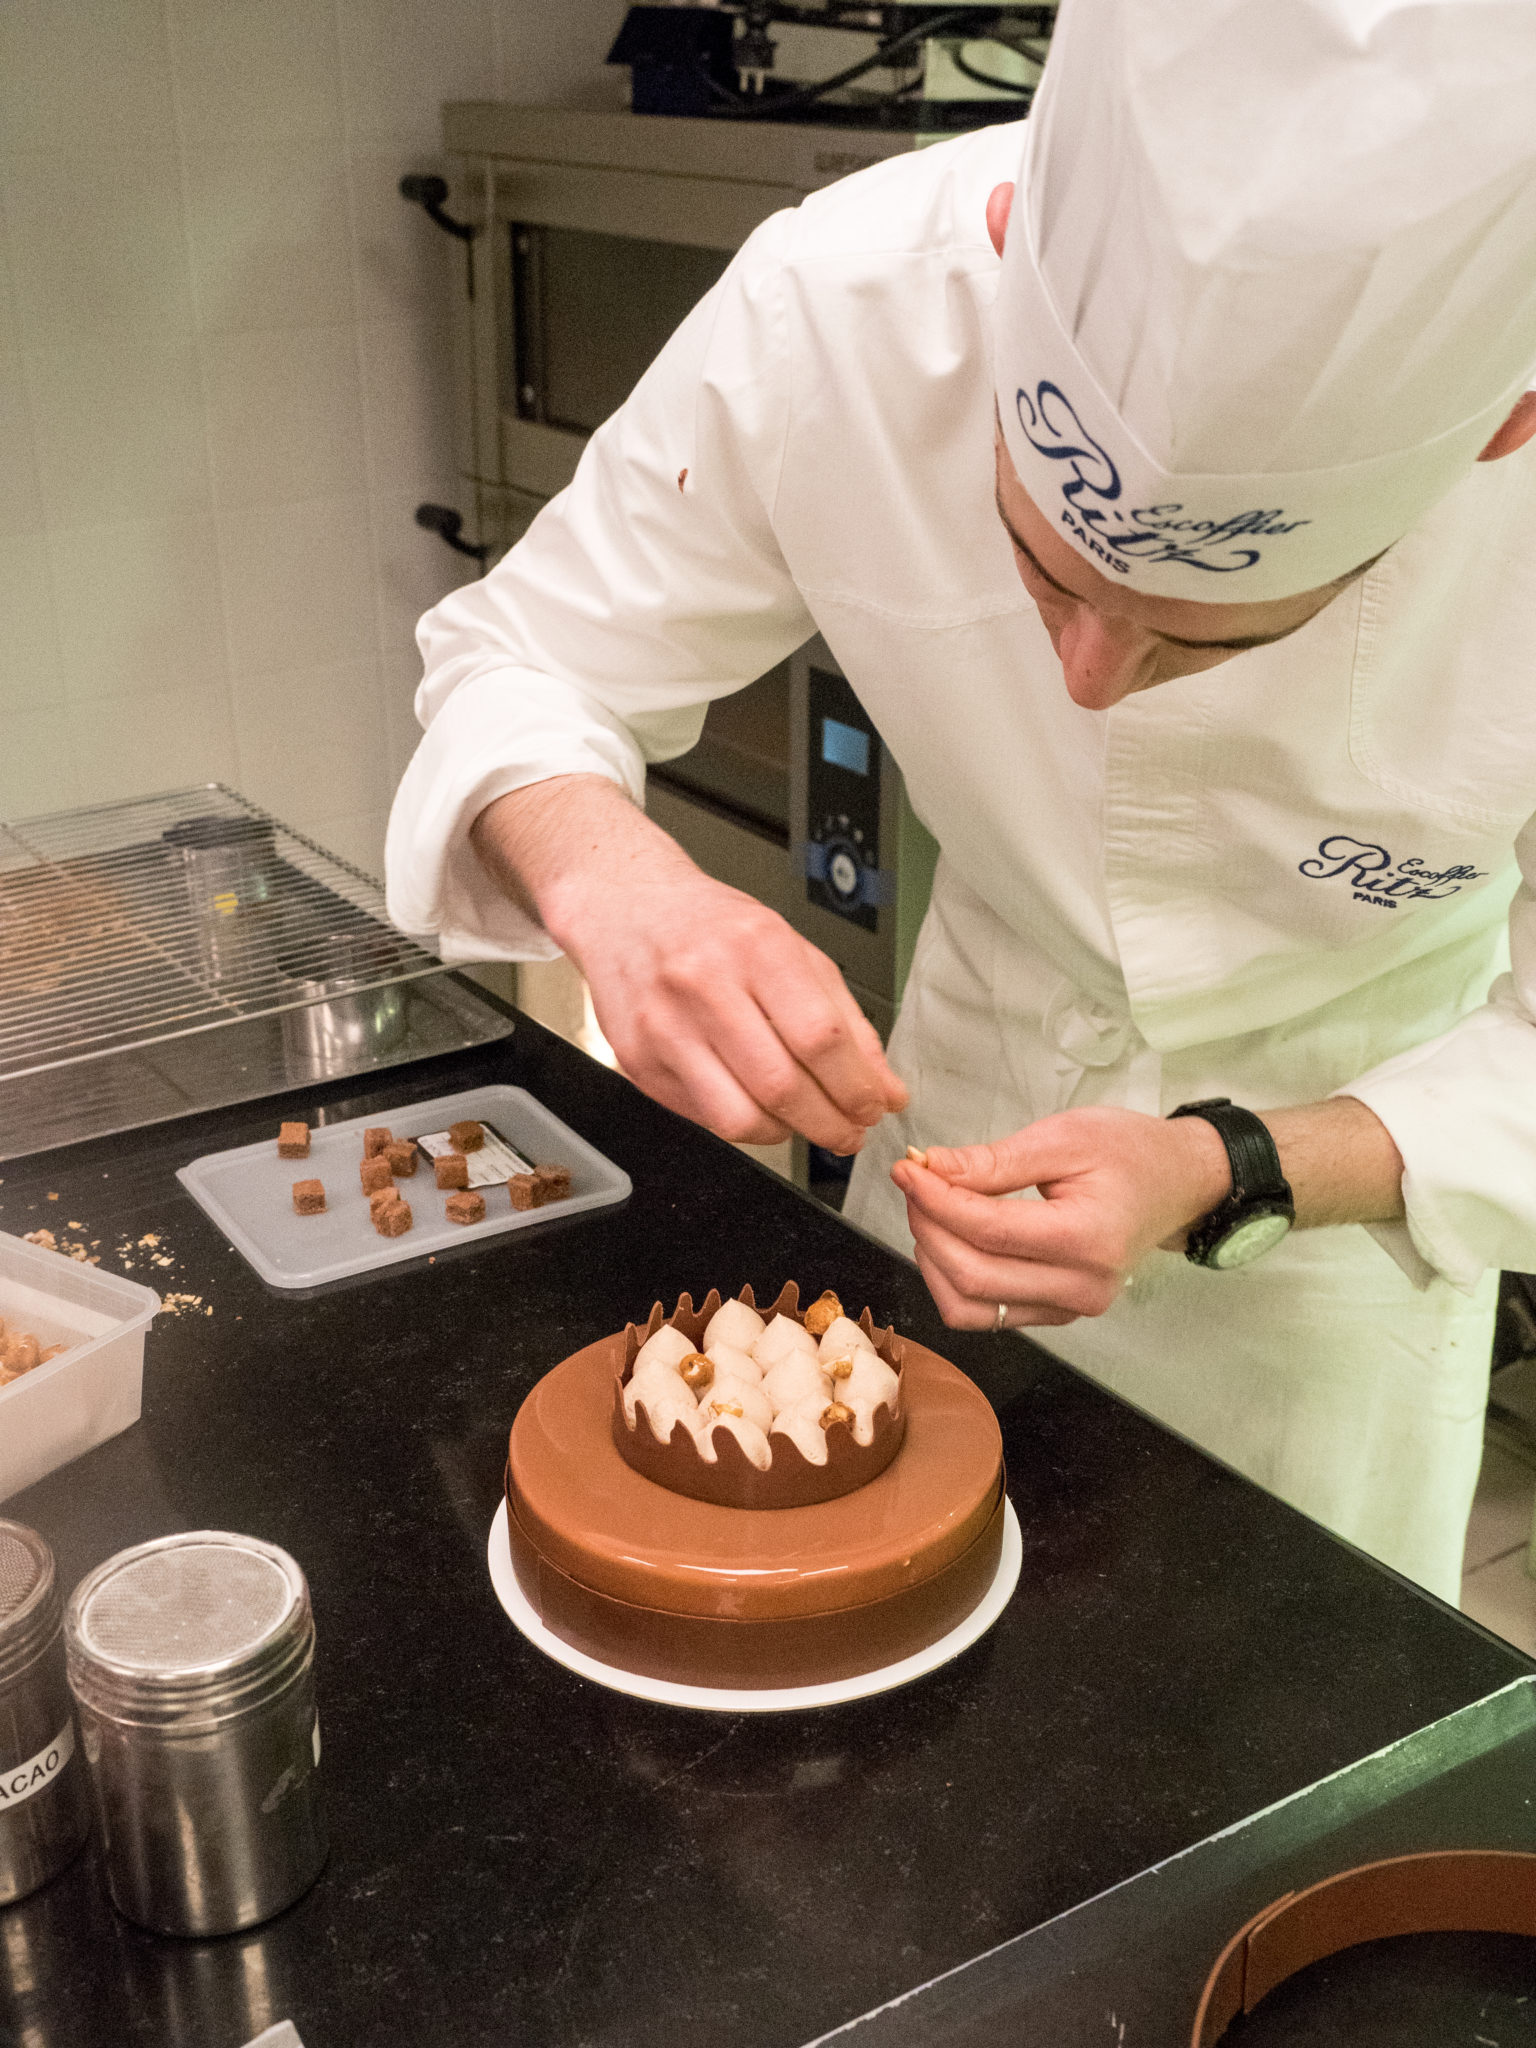 Paris Pastry Class at the Ritz | WORLD OF WANDERLUST